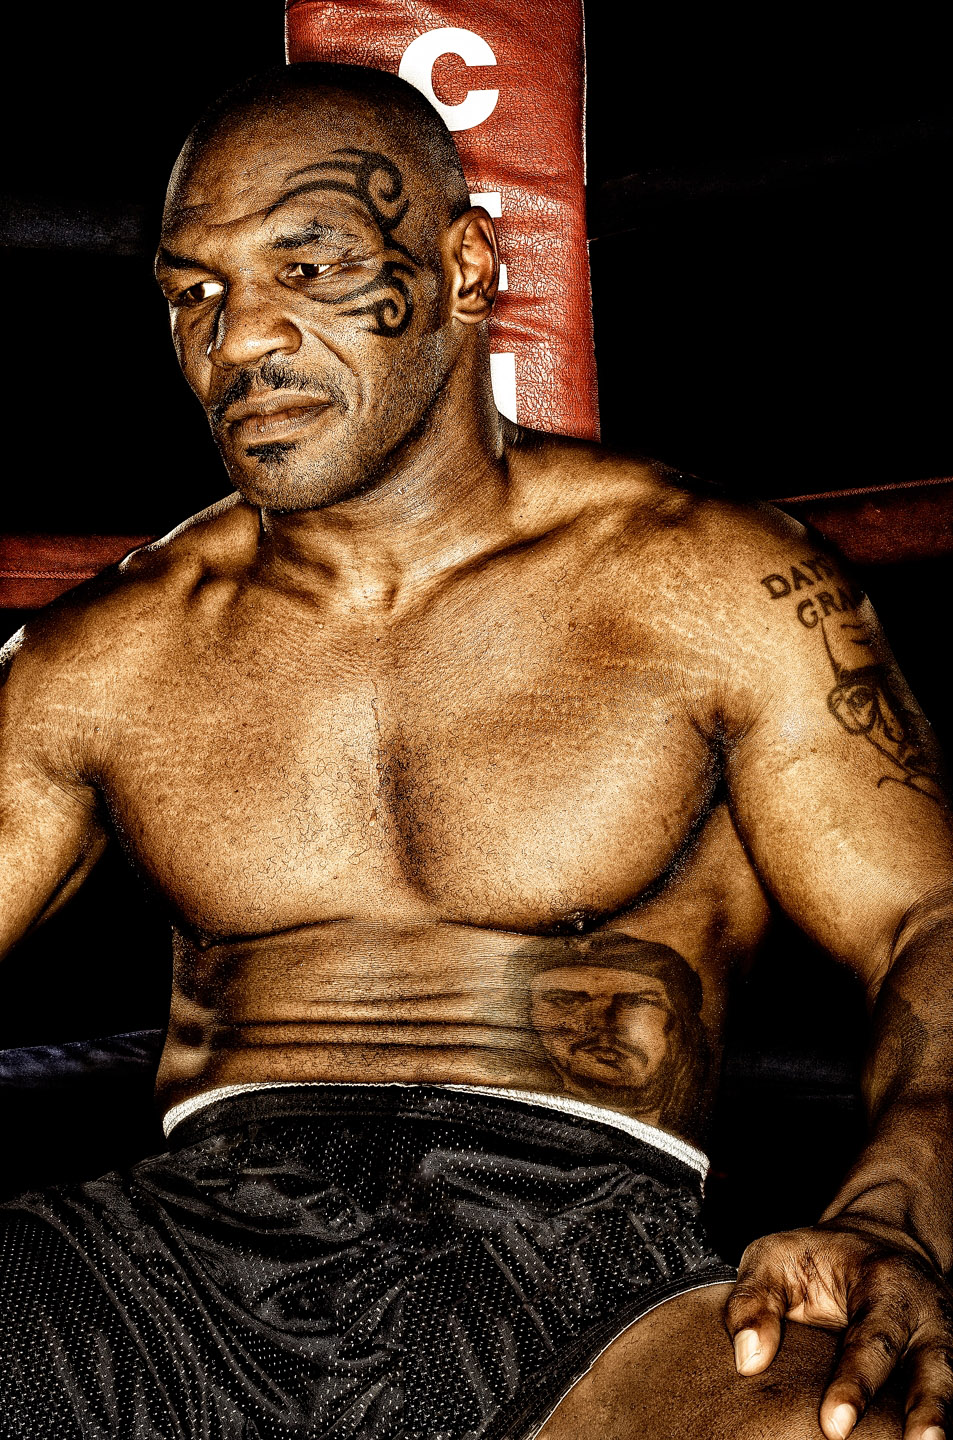 Mike Tyson by Los Angeles Celebrity Photographer